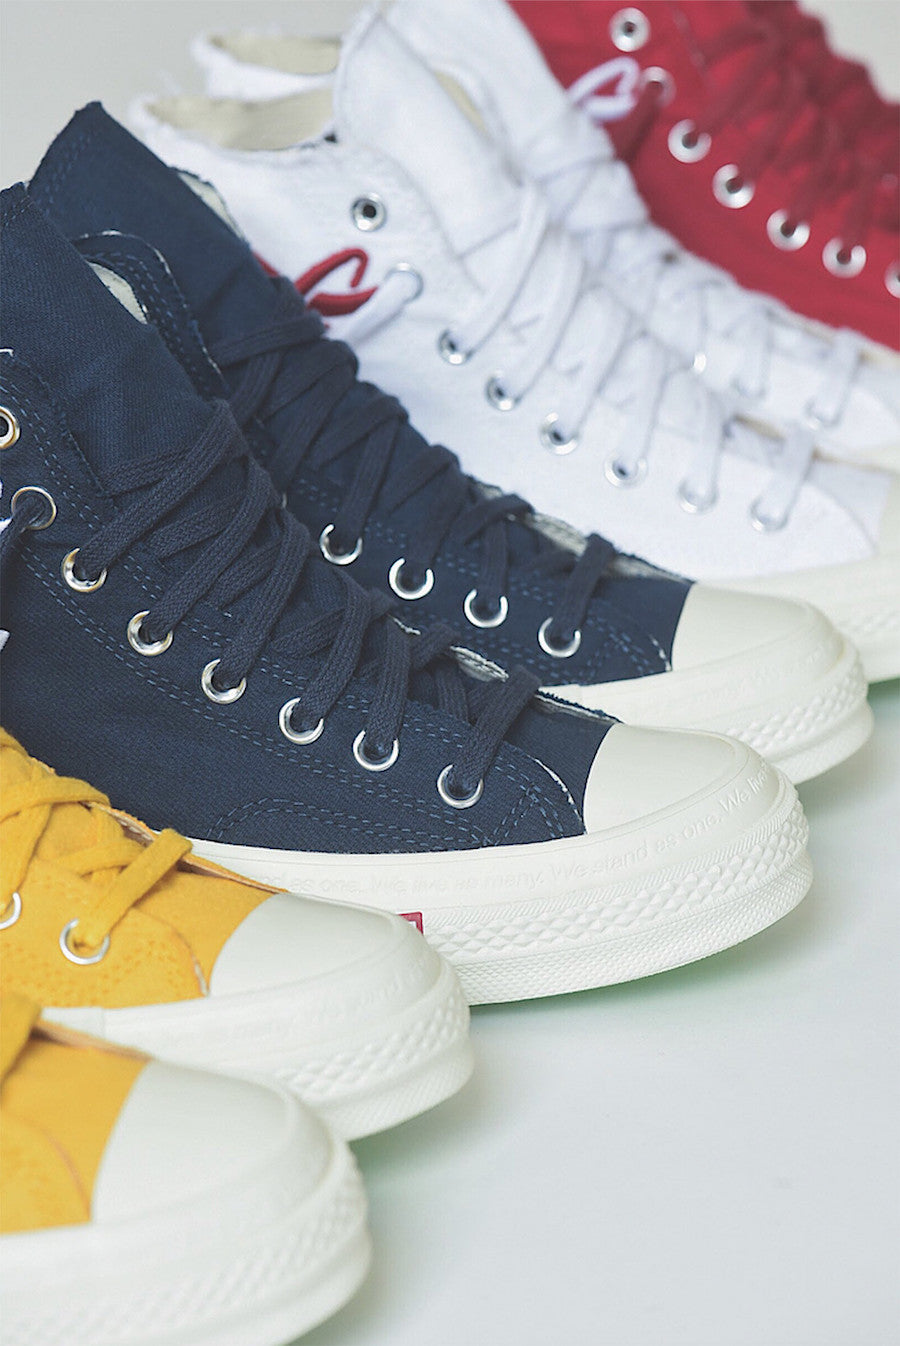 Coca-Cola x Kith x Converse Chuck Taylor Collection